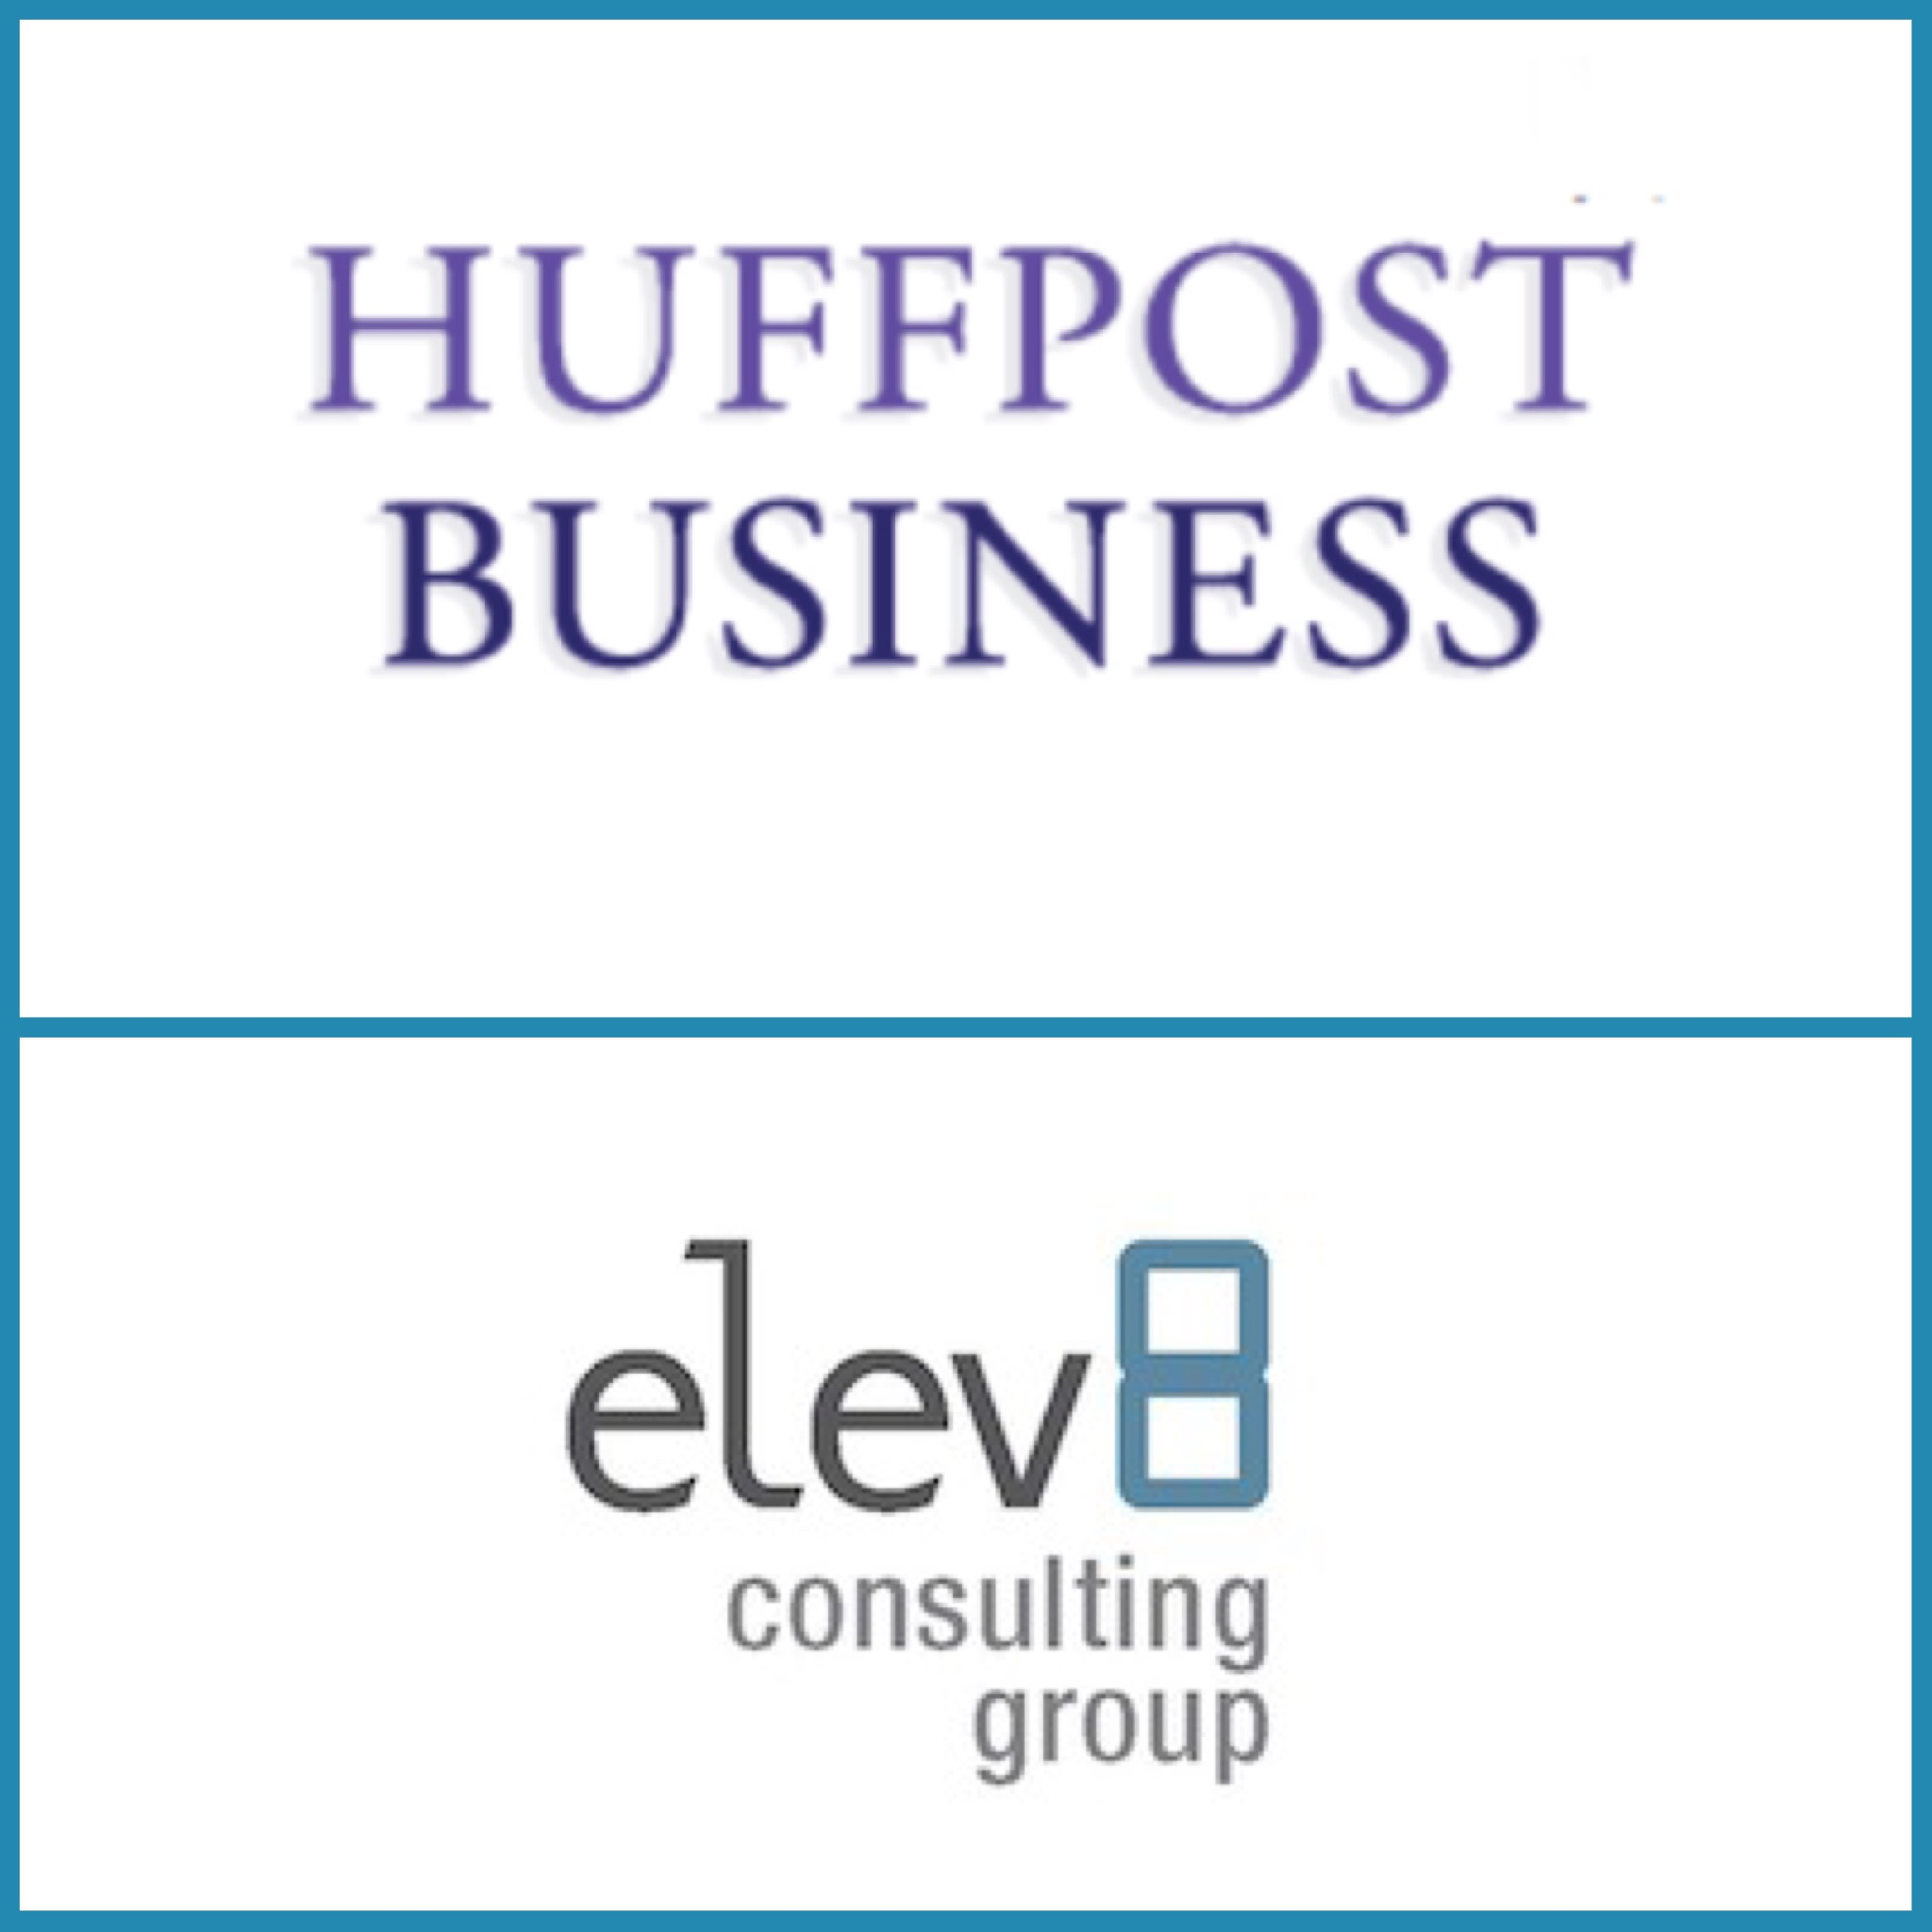 Huffpost Business Elev8 Consulting Group Angela Delmedico